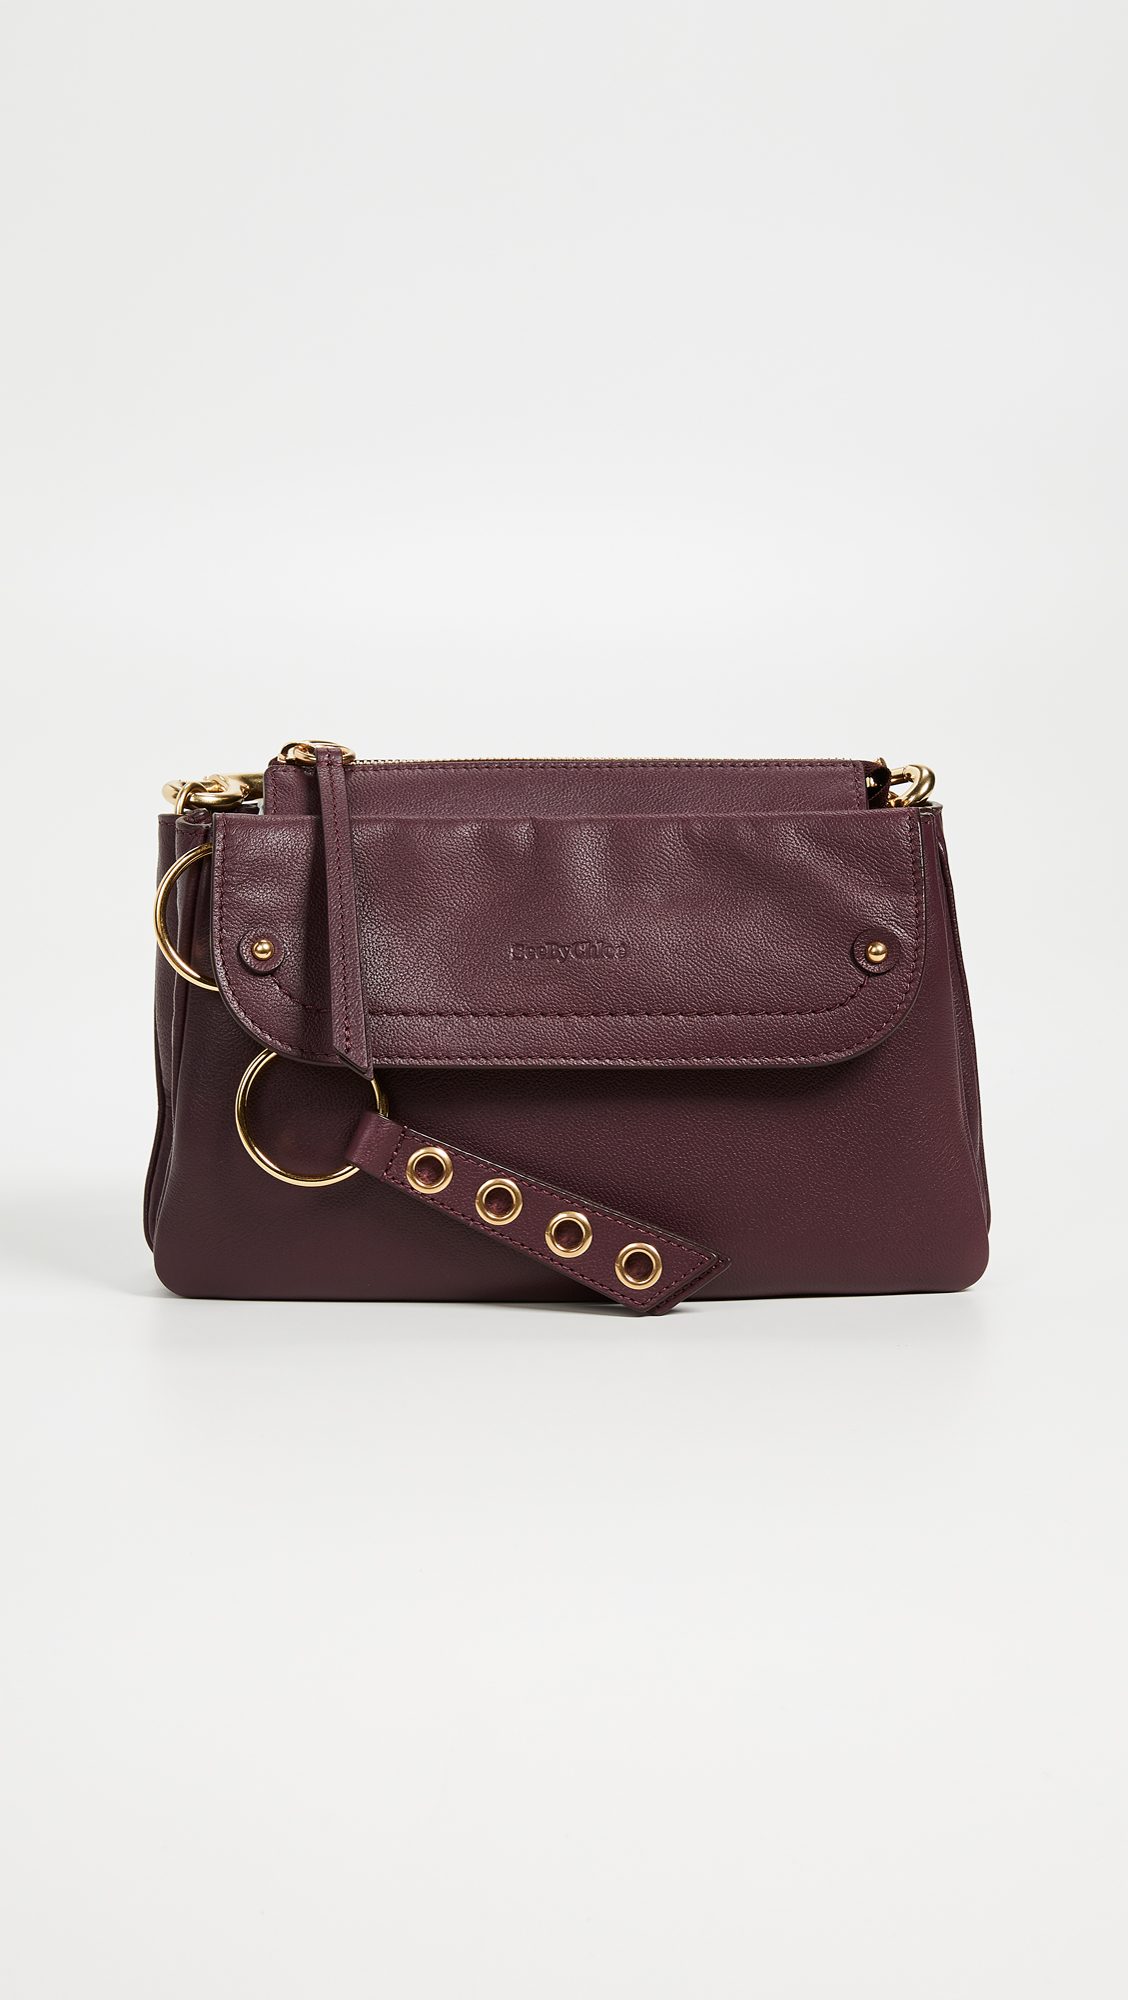 8091c826bc2 See by Chloe Phill Crossbody Bag   SHOPBOP